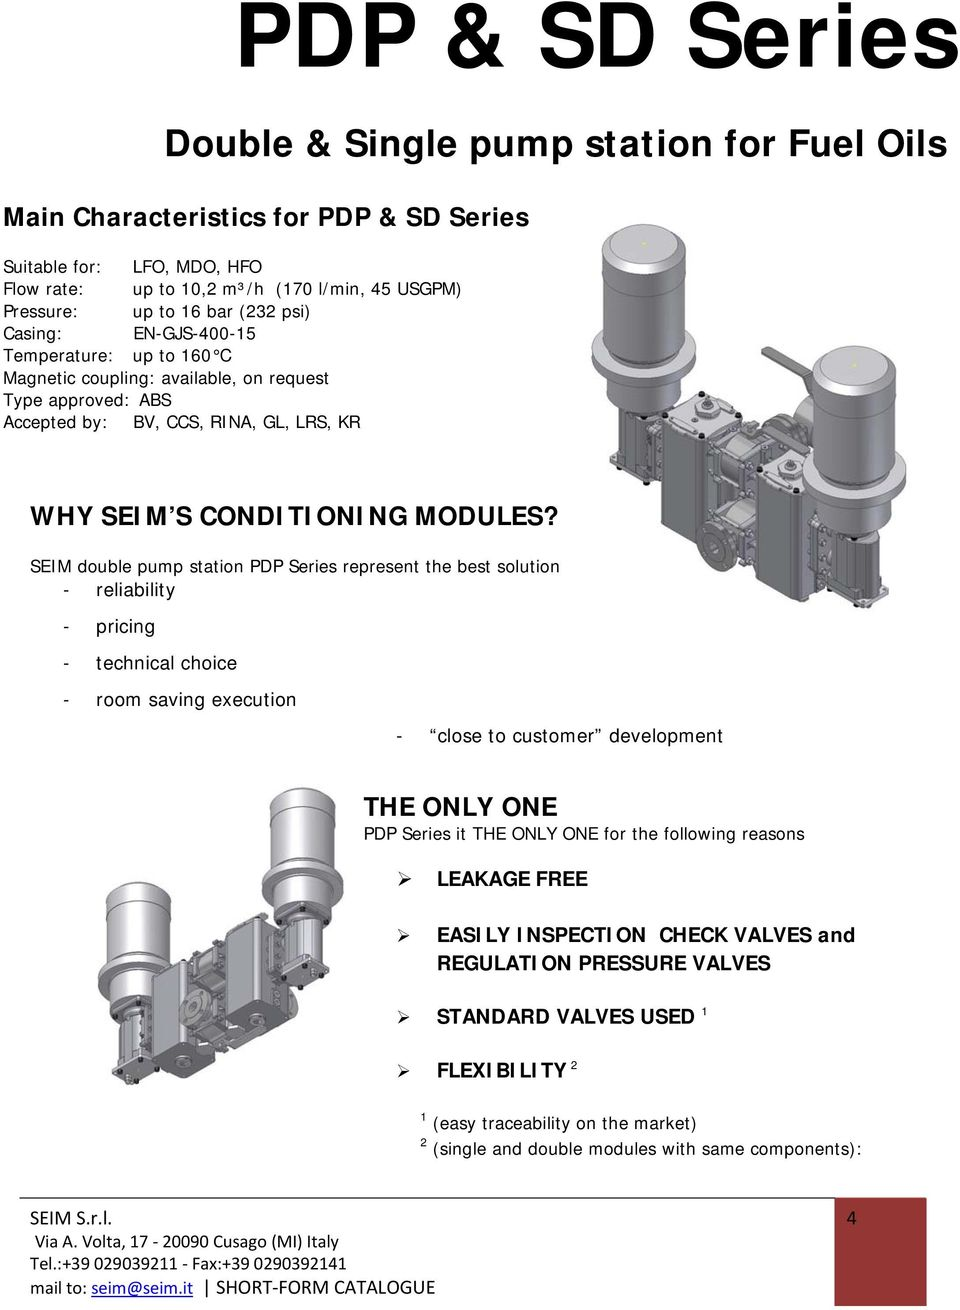 SEIM double pump station PDP Series represent the best solution in term of - reliability - pricing - technical choice - room saving execution - close to customer development THE ONLY ONE PDP Series